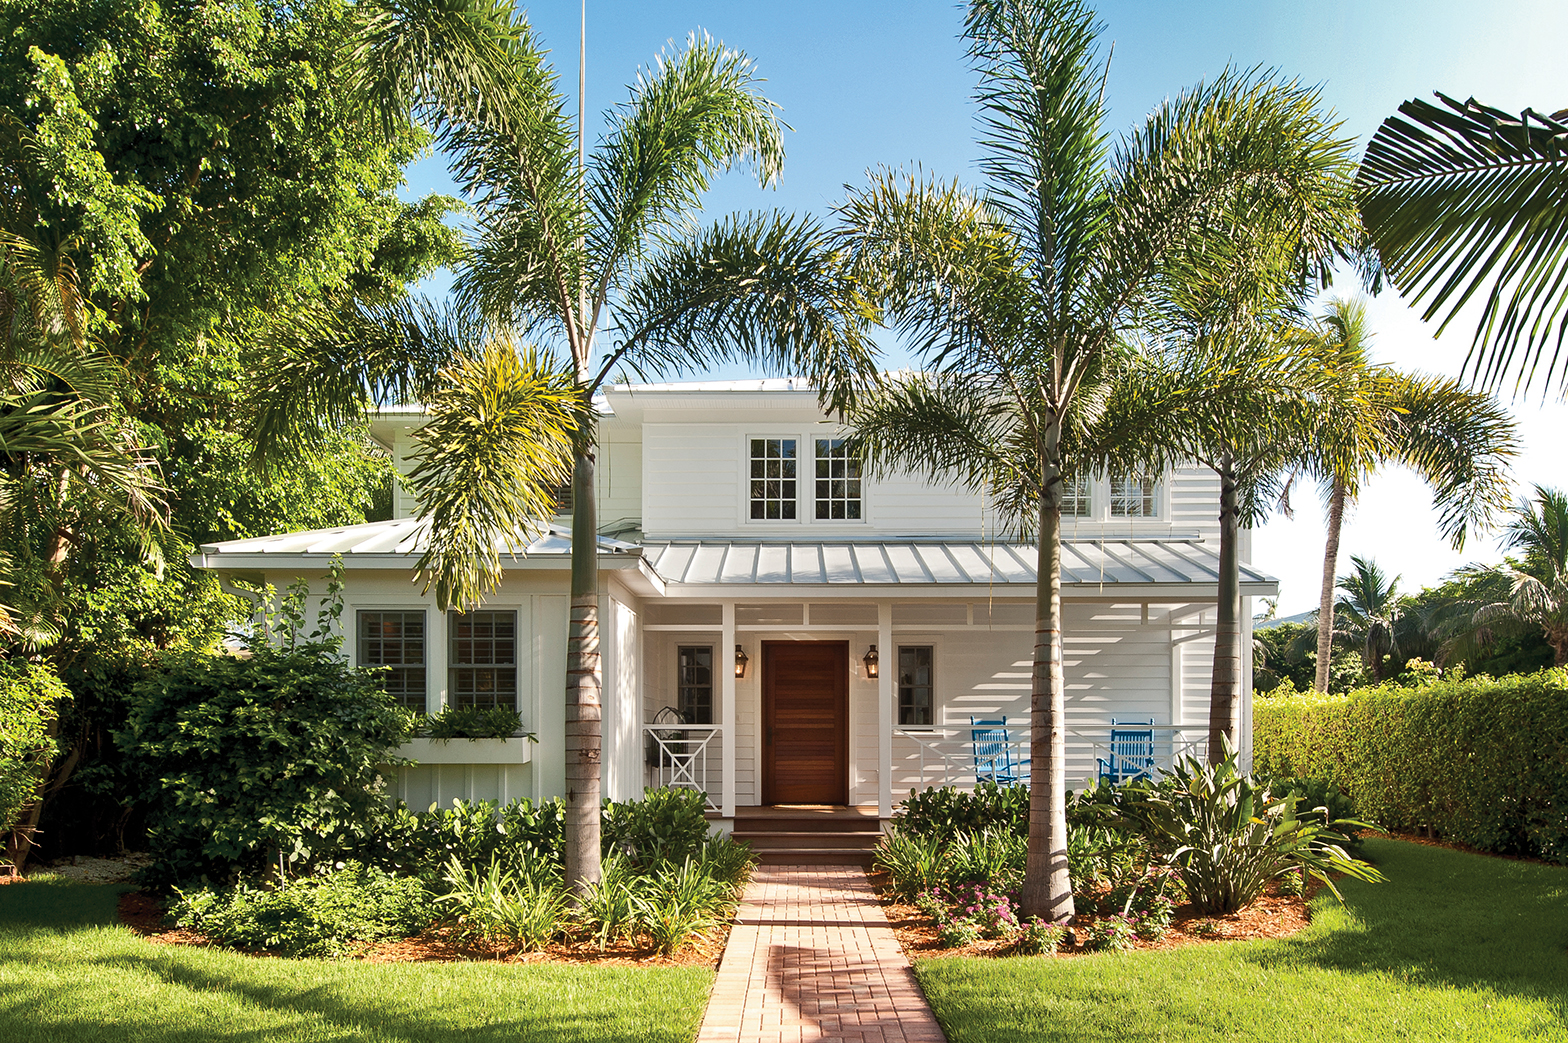 mhk-architecture-naples-florida-your-home-magazine4.jpg